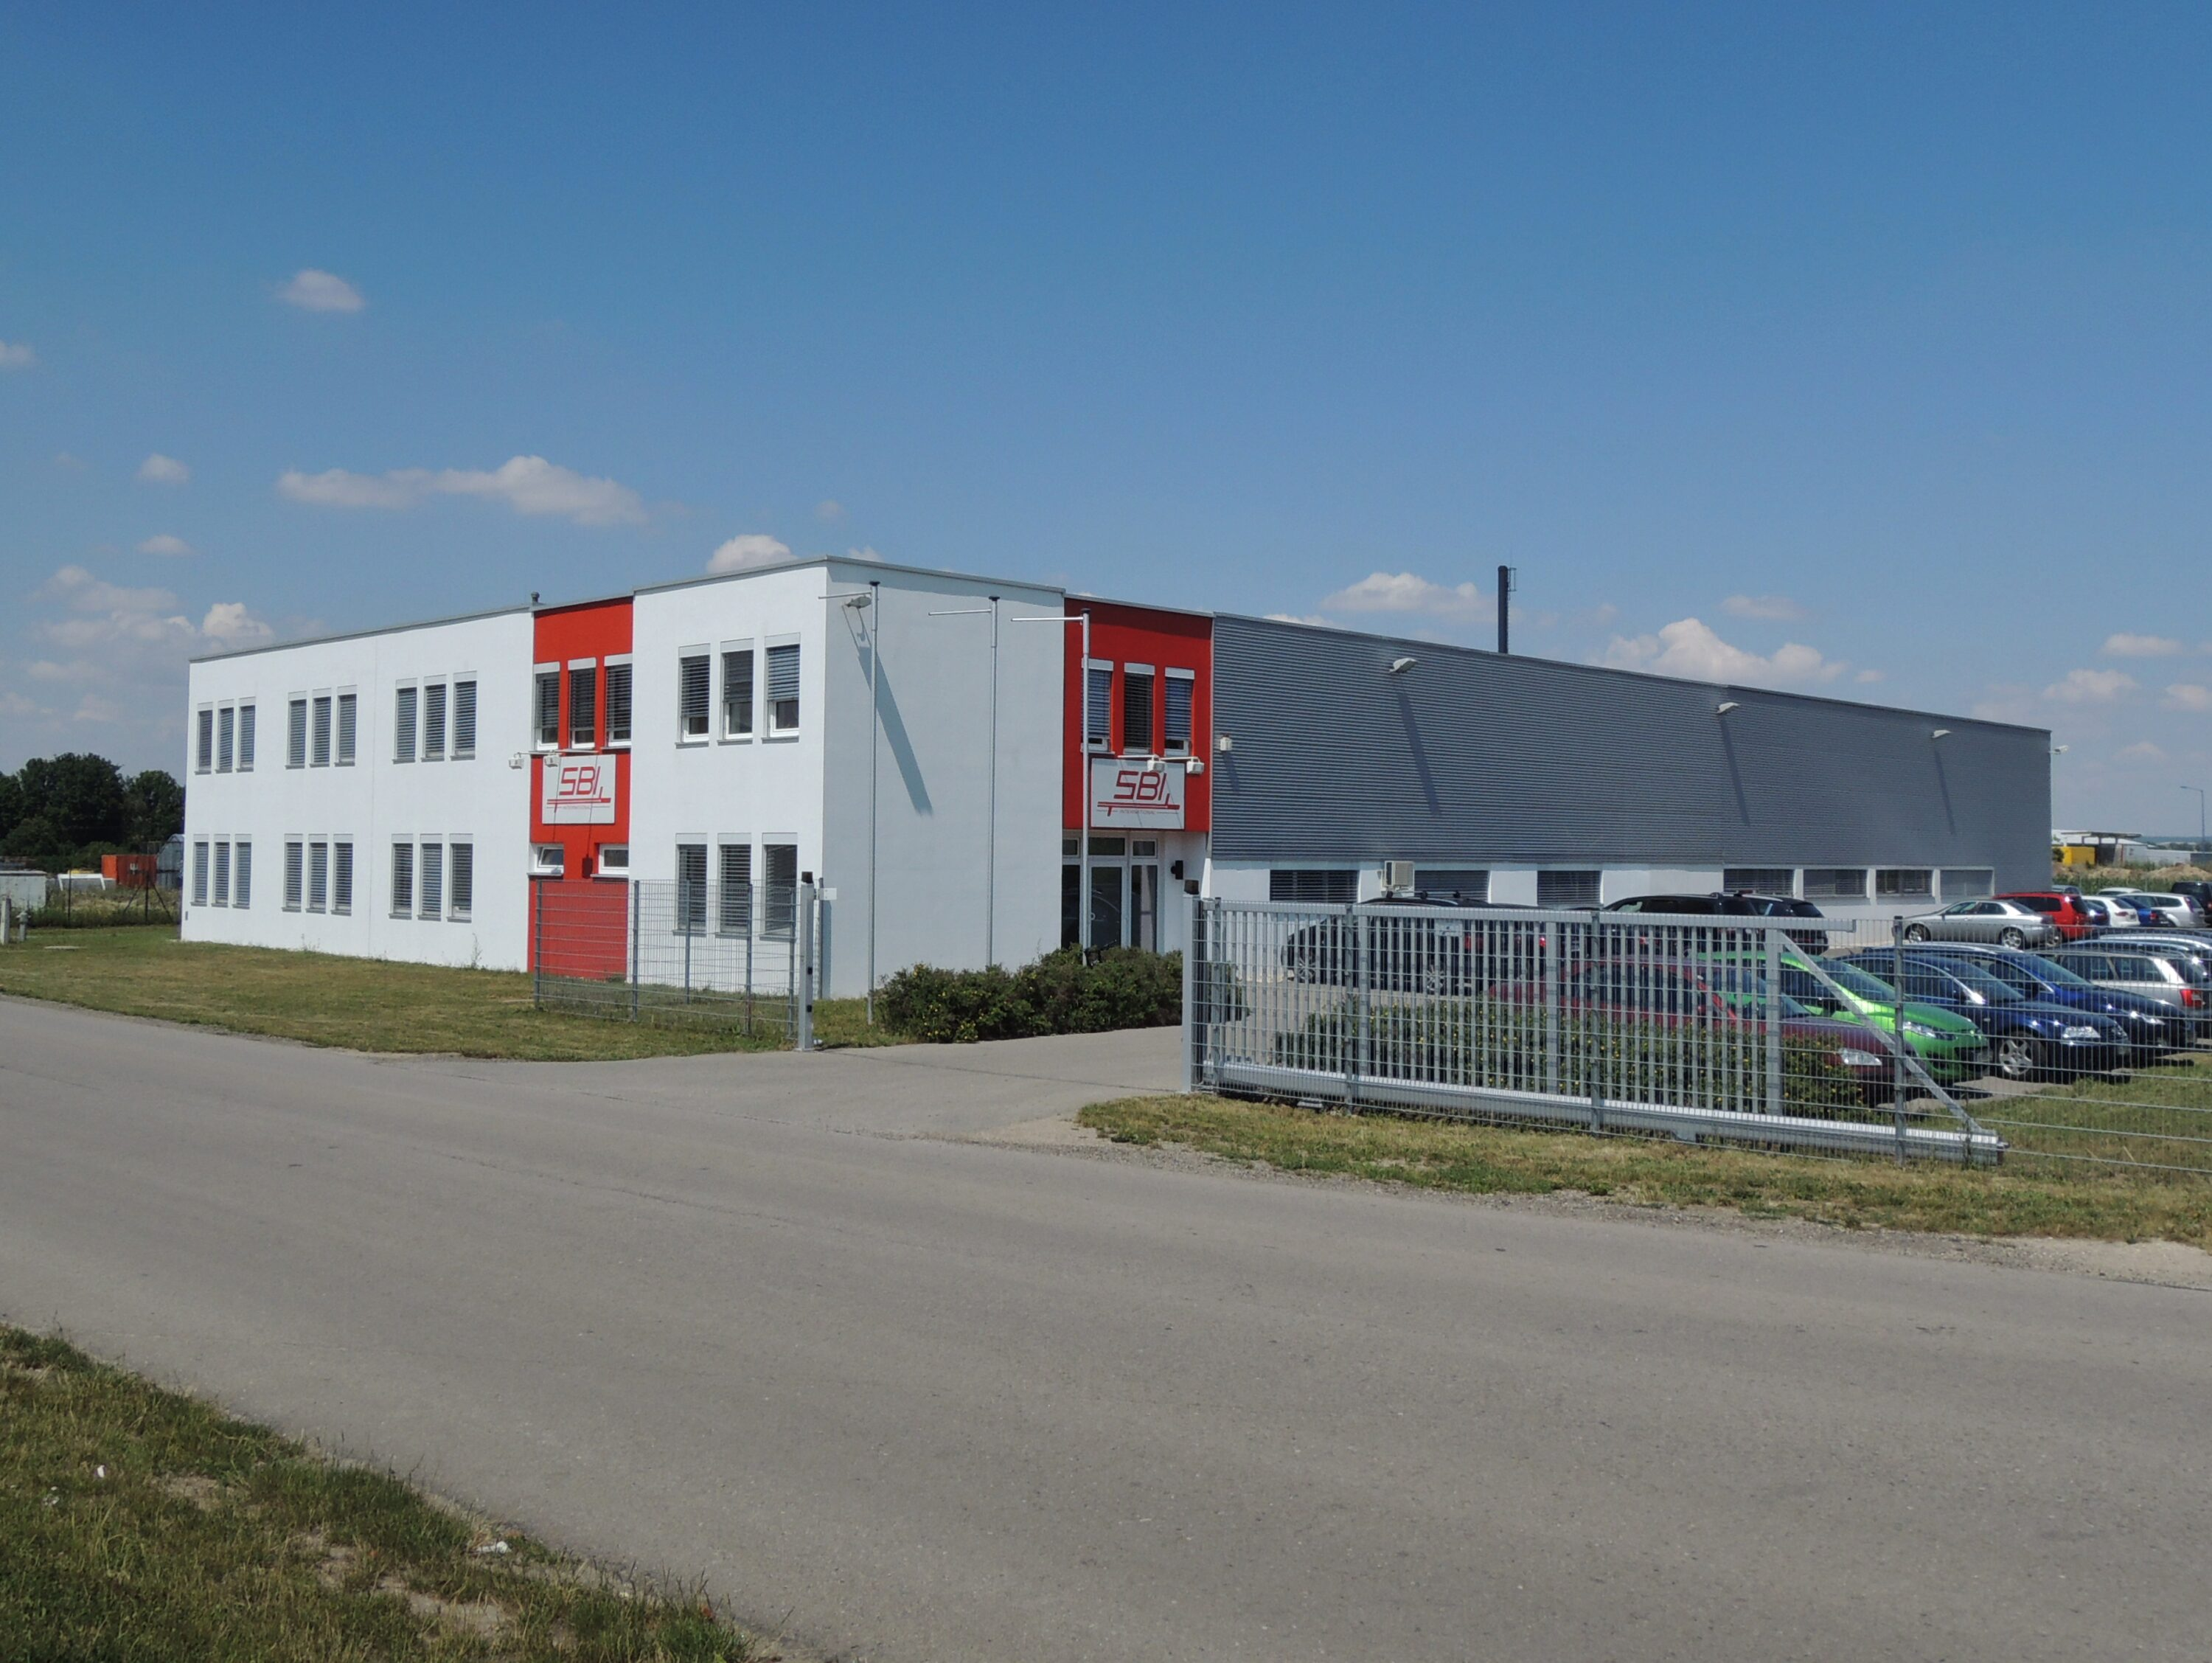 SBI GmbH premises in Hollabrunn, Austria